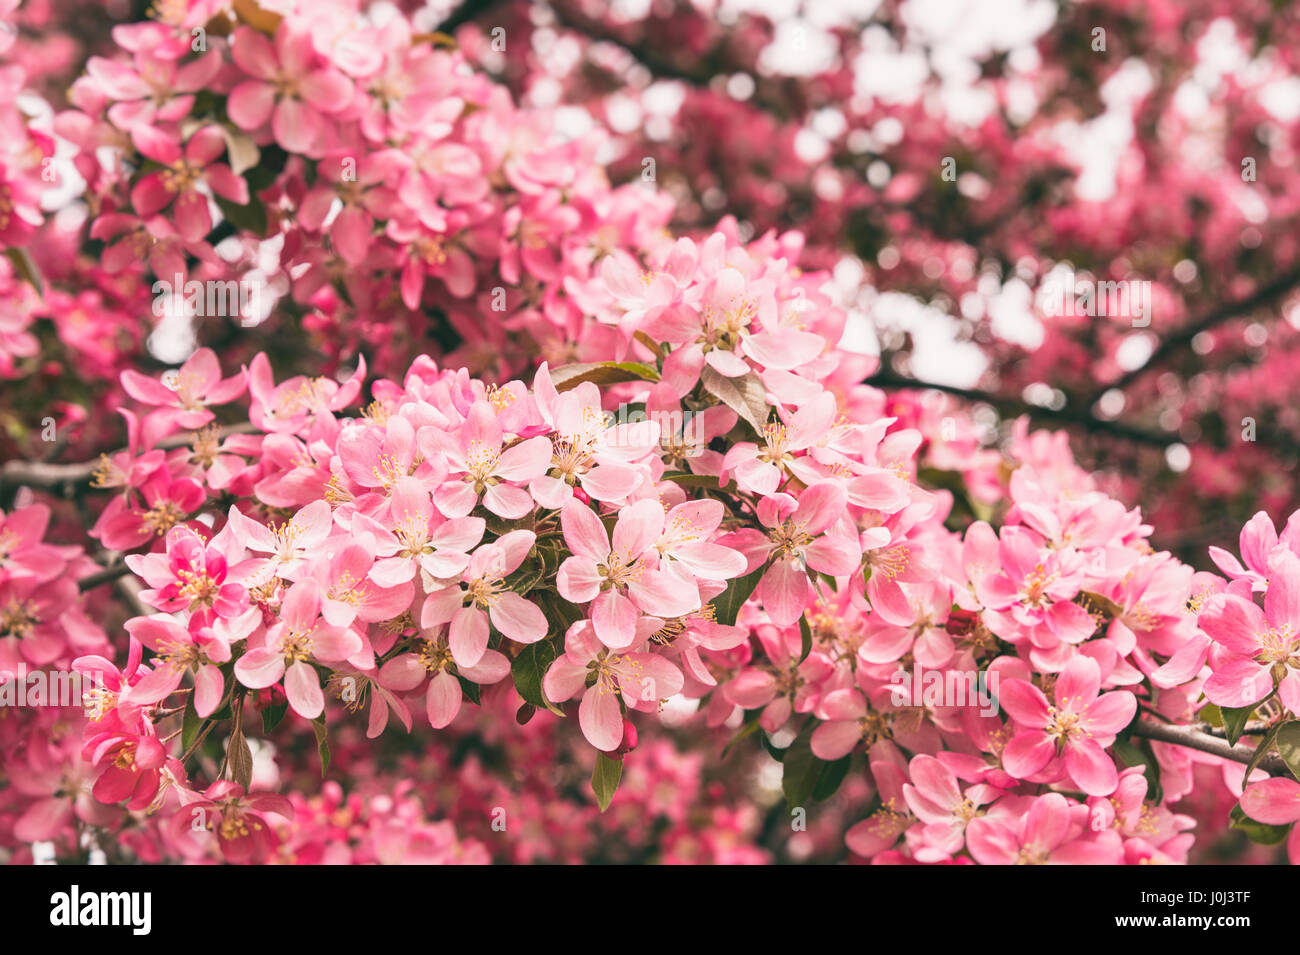 Crabapple tree in bloom with pink flowers stock photo 138081119 alamy crabapple tree in bloom with pink flowers mightylinksfo